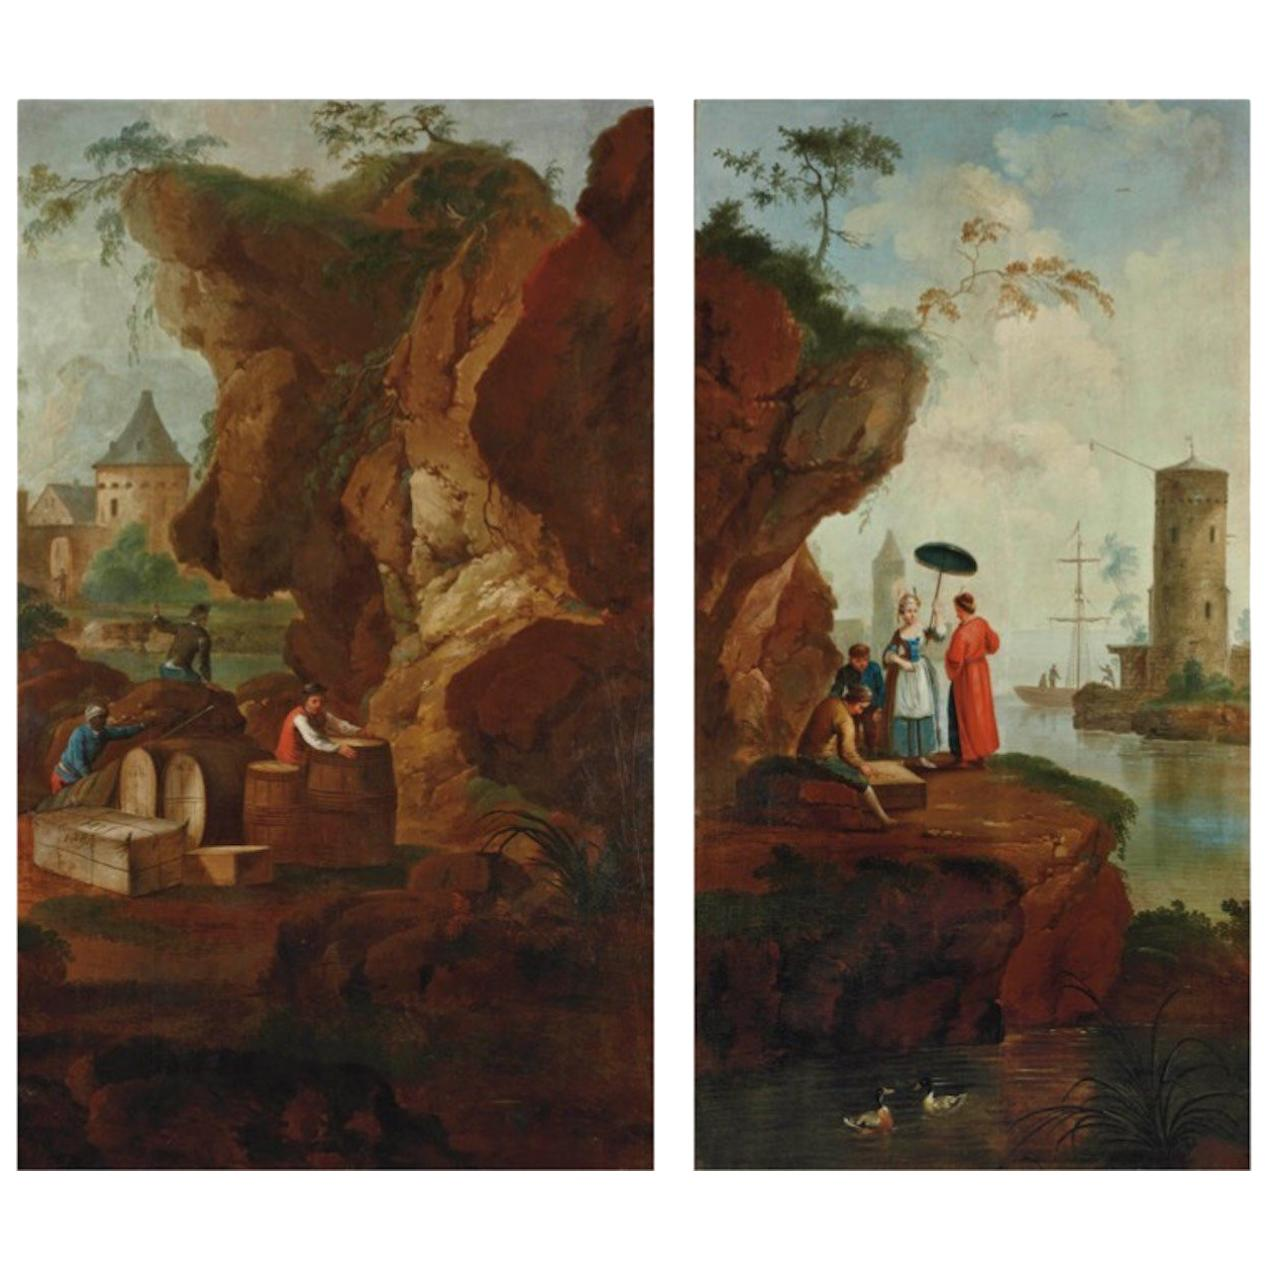 Two Seascapes with Figures, Oil on Canvas, Manner of Claude-Joseph Vernet